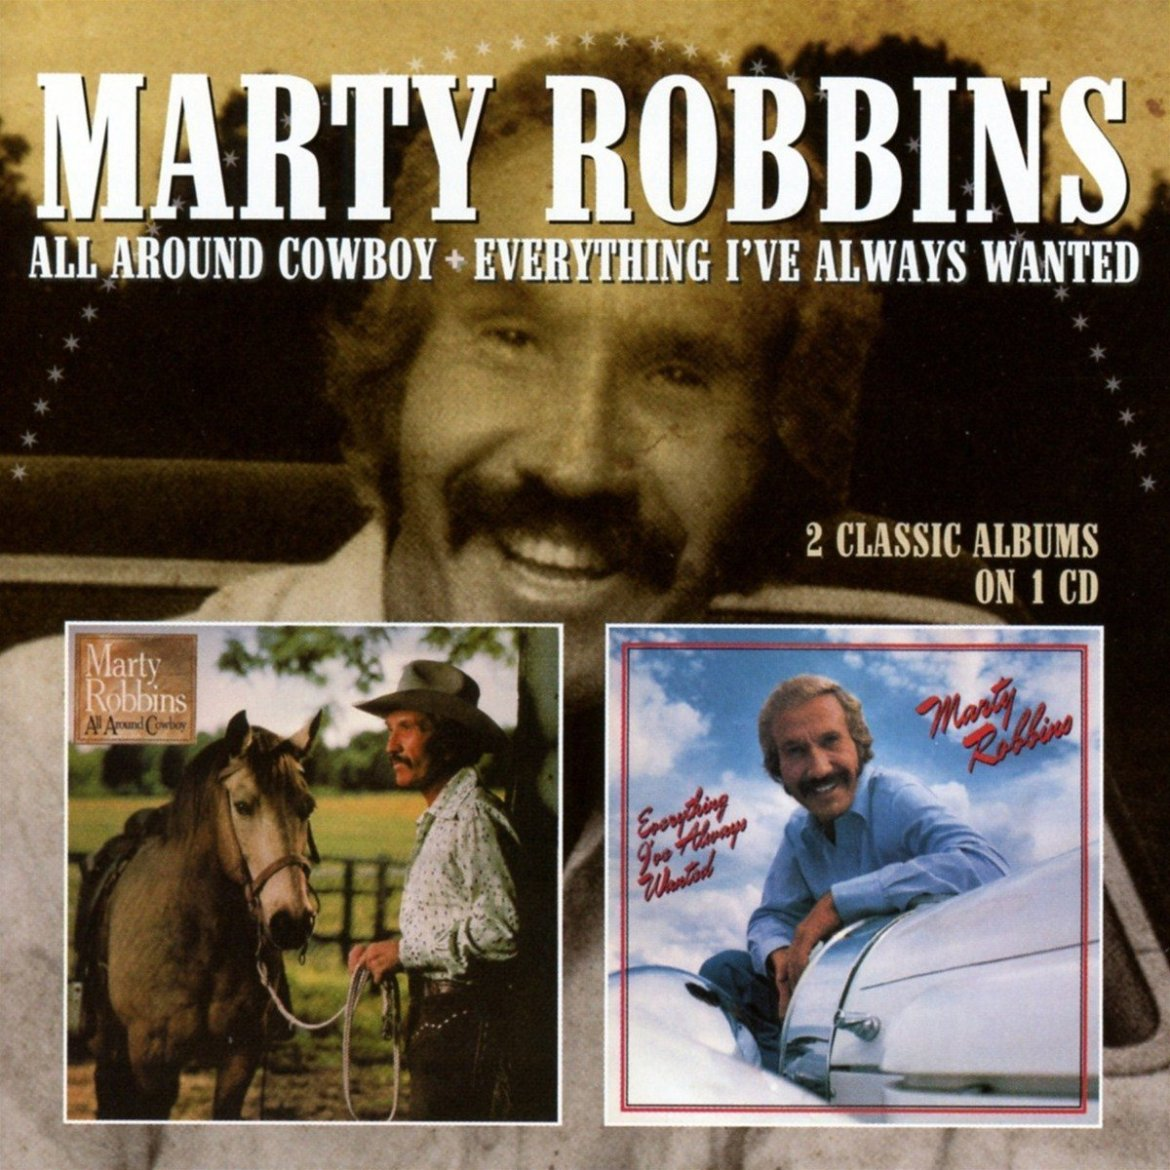 Marty Robbins – All Around Cowboy / Everything I've Always Wanted (Cherry Red Records)